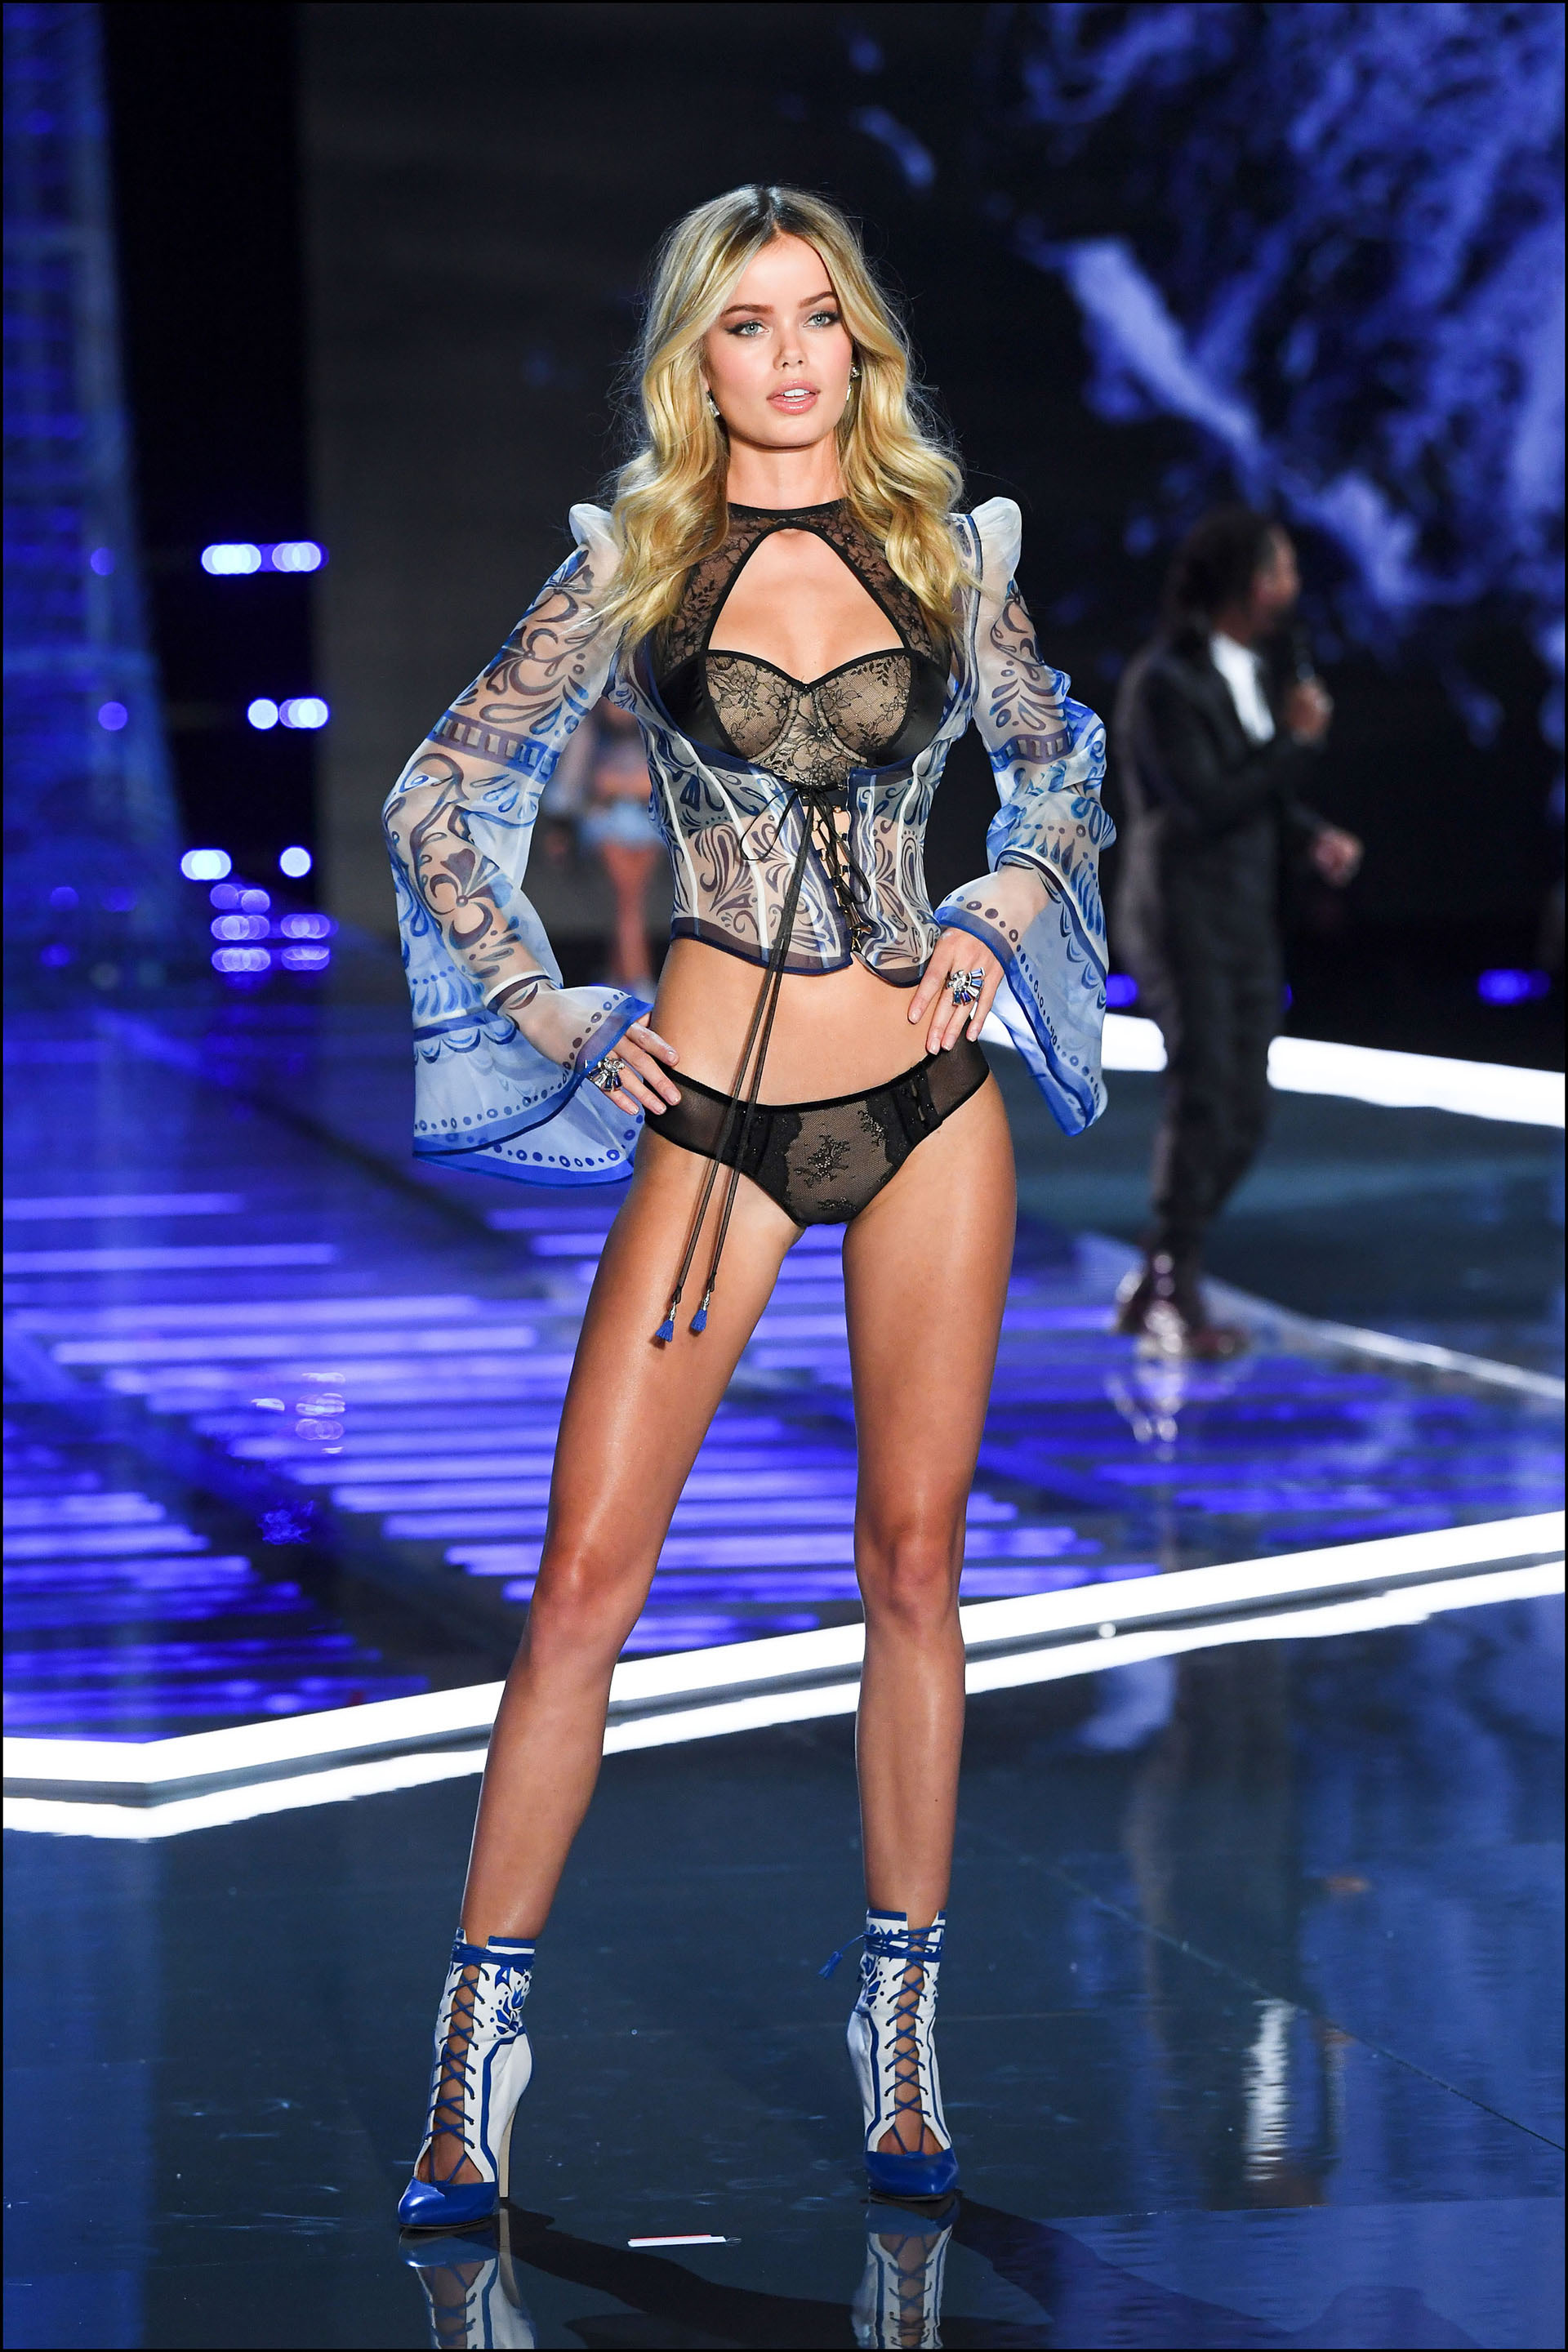 Frida Aasen is seen on stage at the Victoria